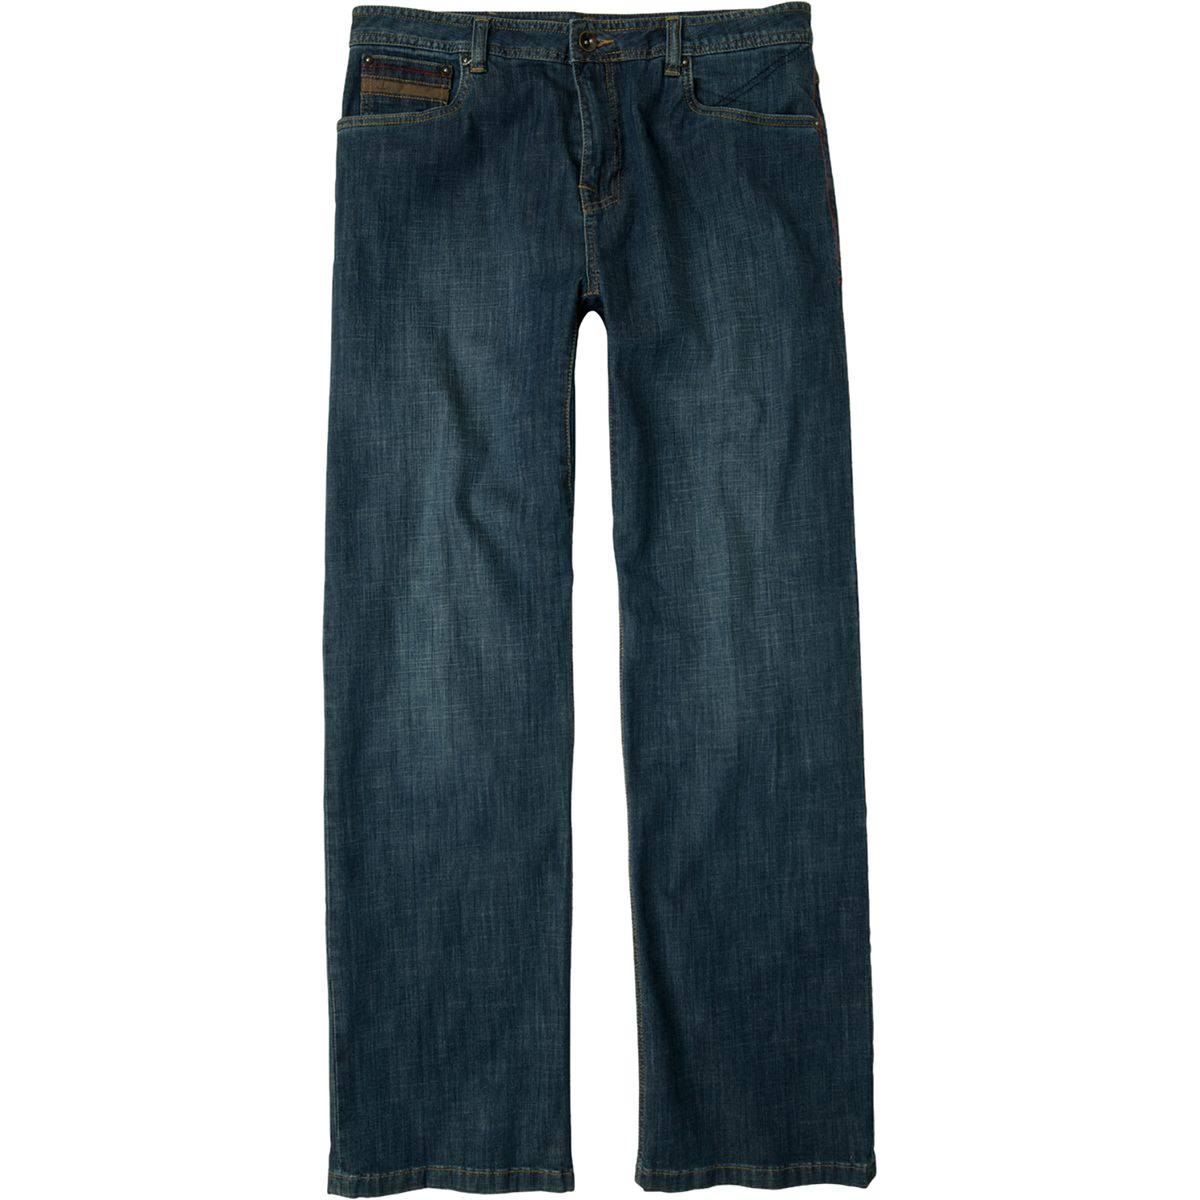 PrAna Mens Axiom Jean - Stone Wash, Size 32